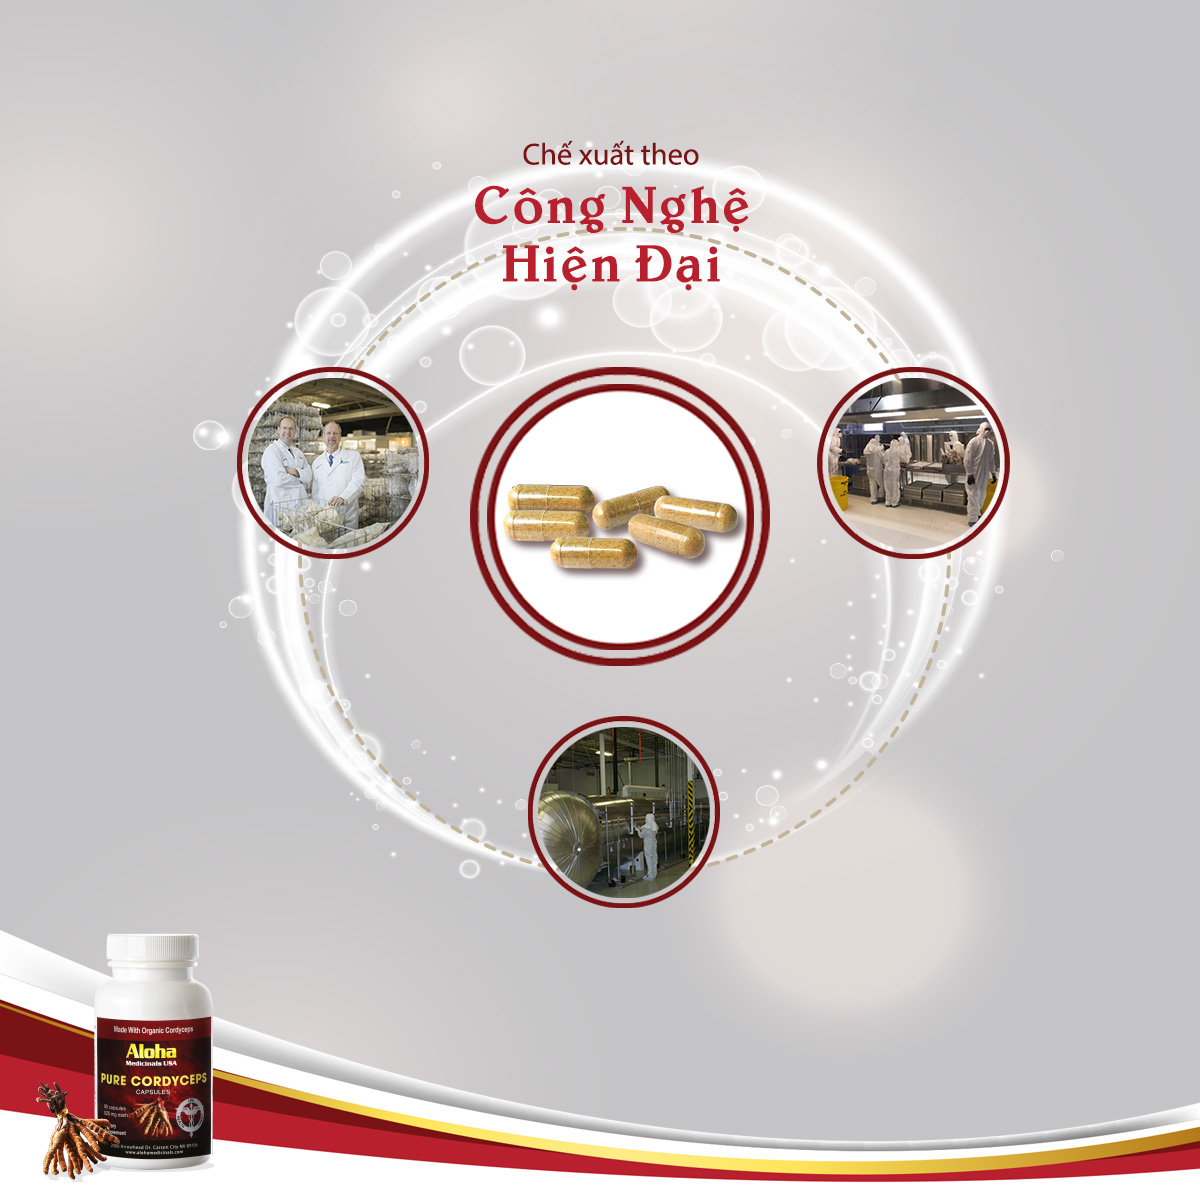 cong-nghe-che-suat-dong-trung-ha-thao-cua-my